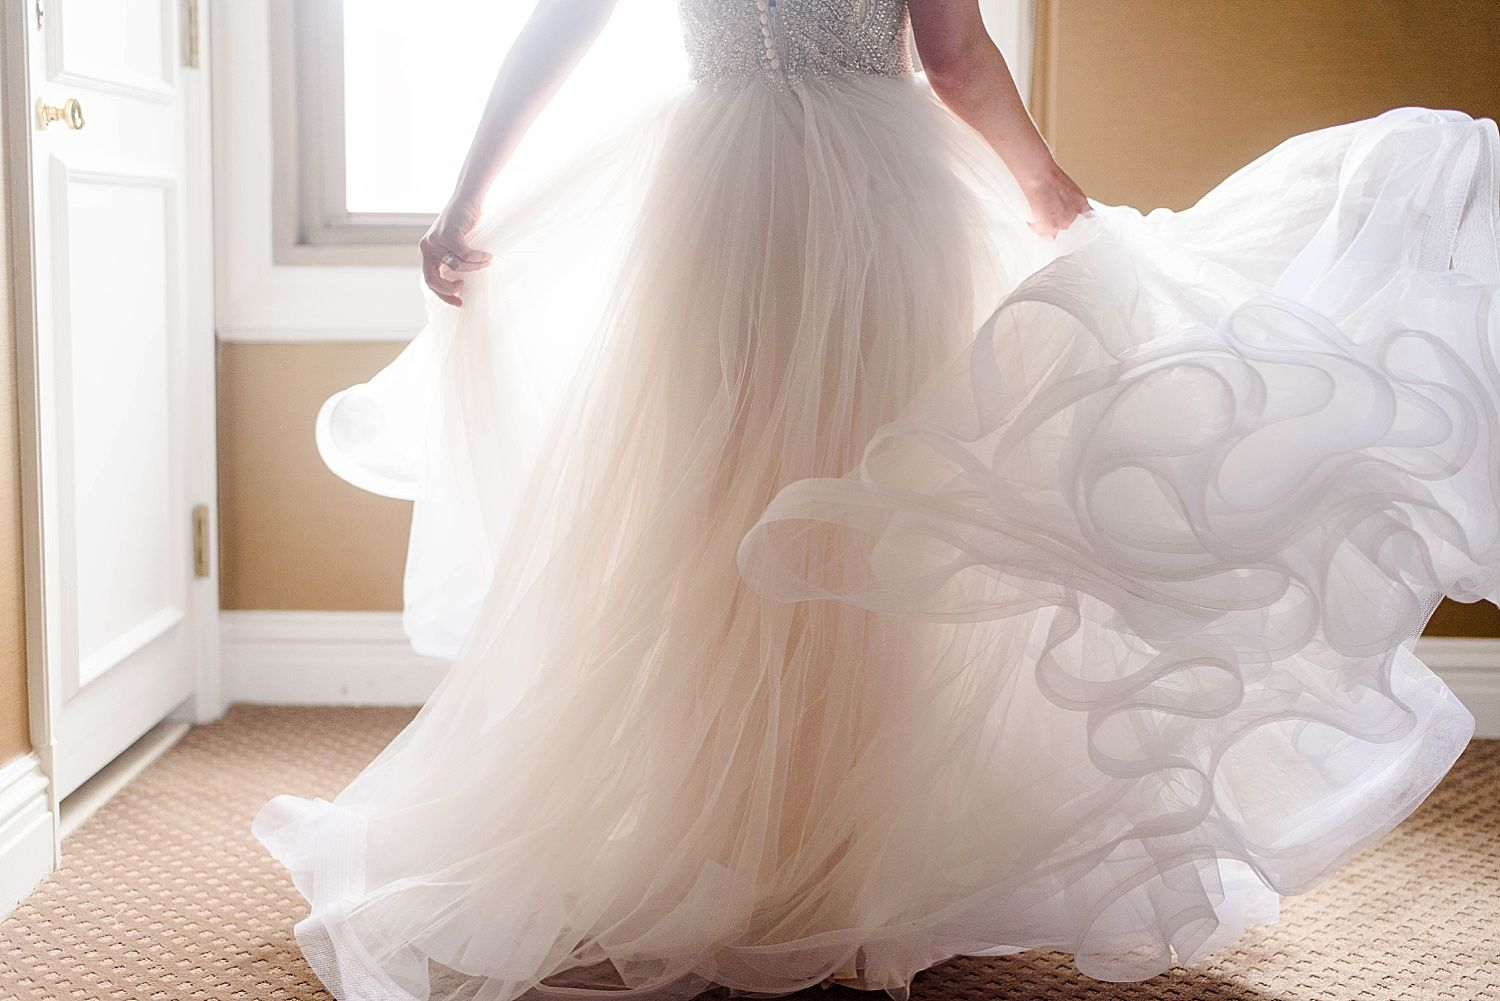 Inspiration Pittsburgh Wedding Ideas From Burgh Brides In 2020 Bride Bridal Style Brides And Bridesmaids